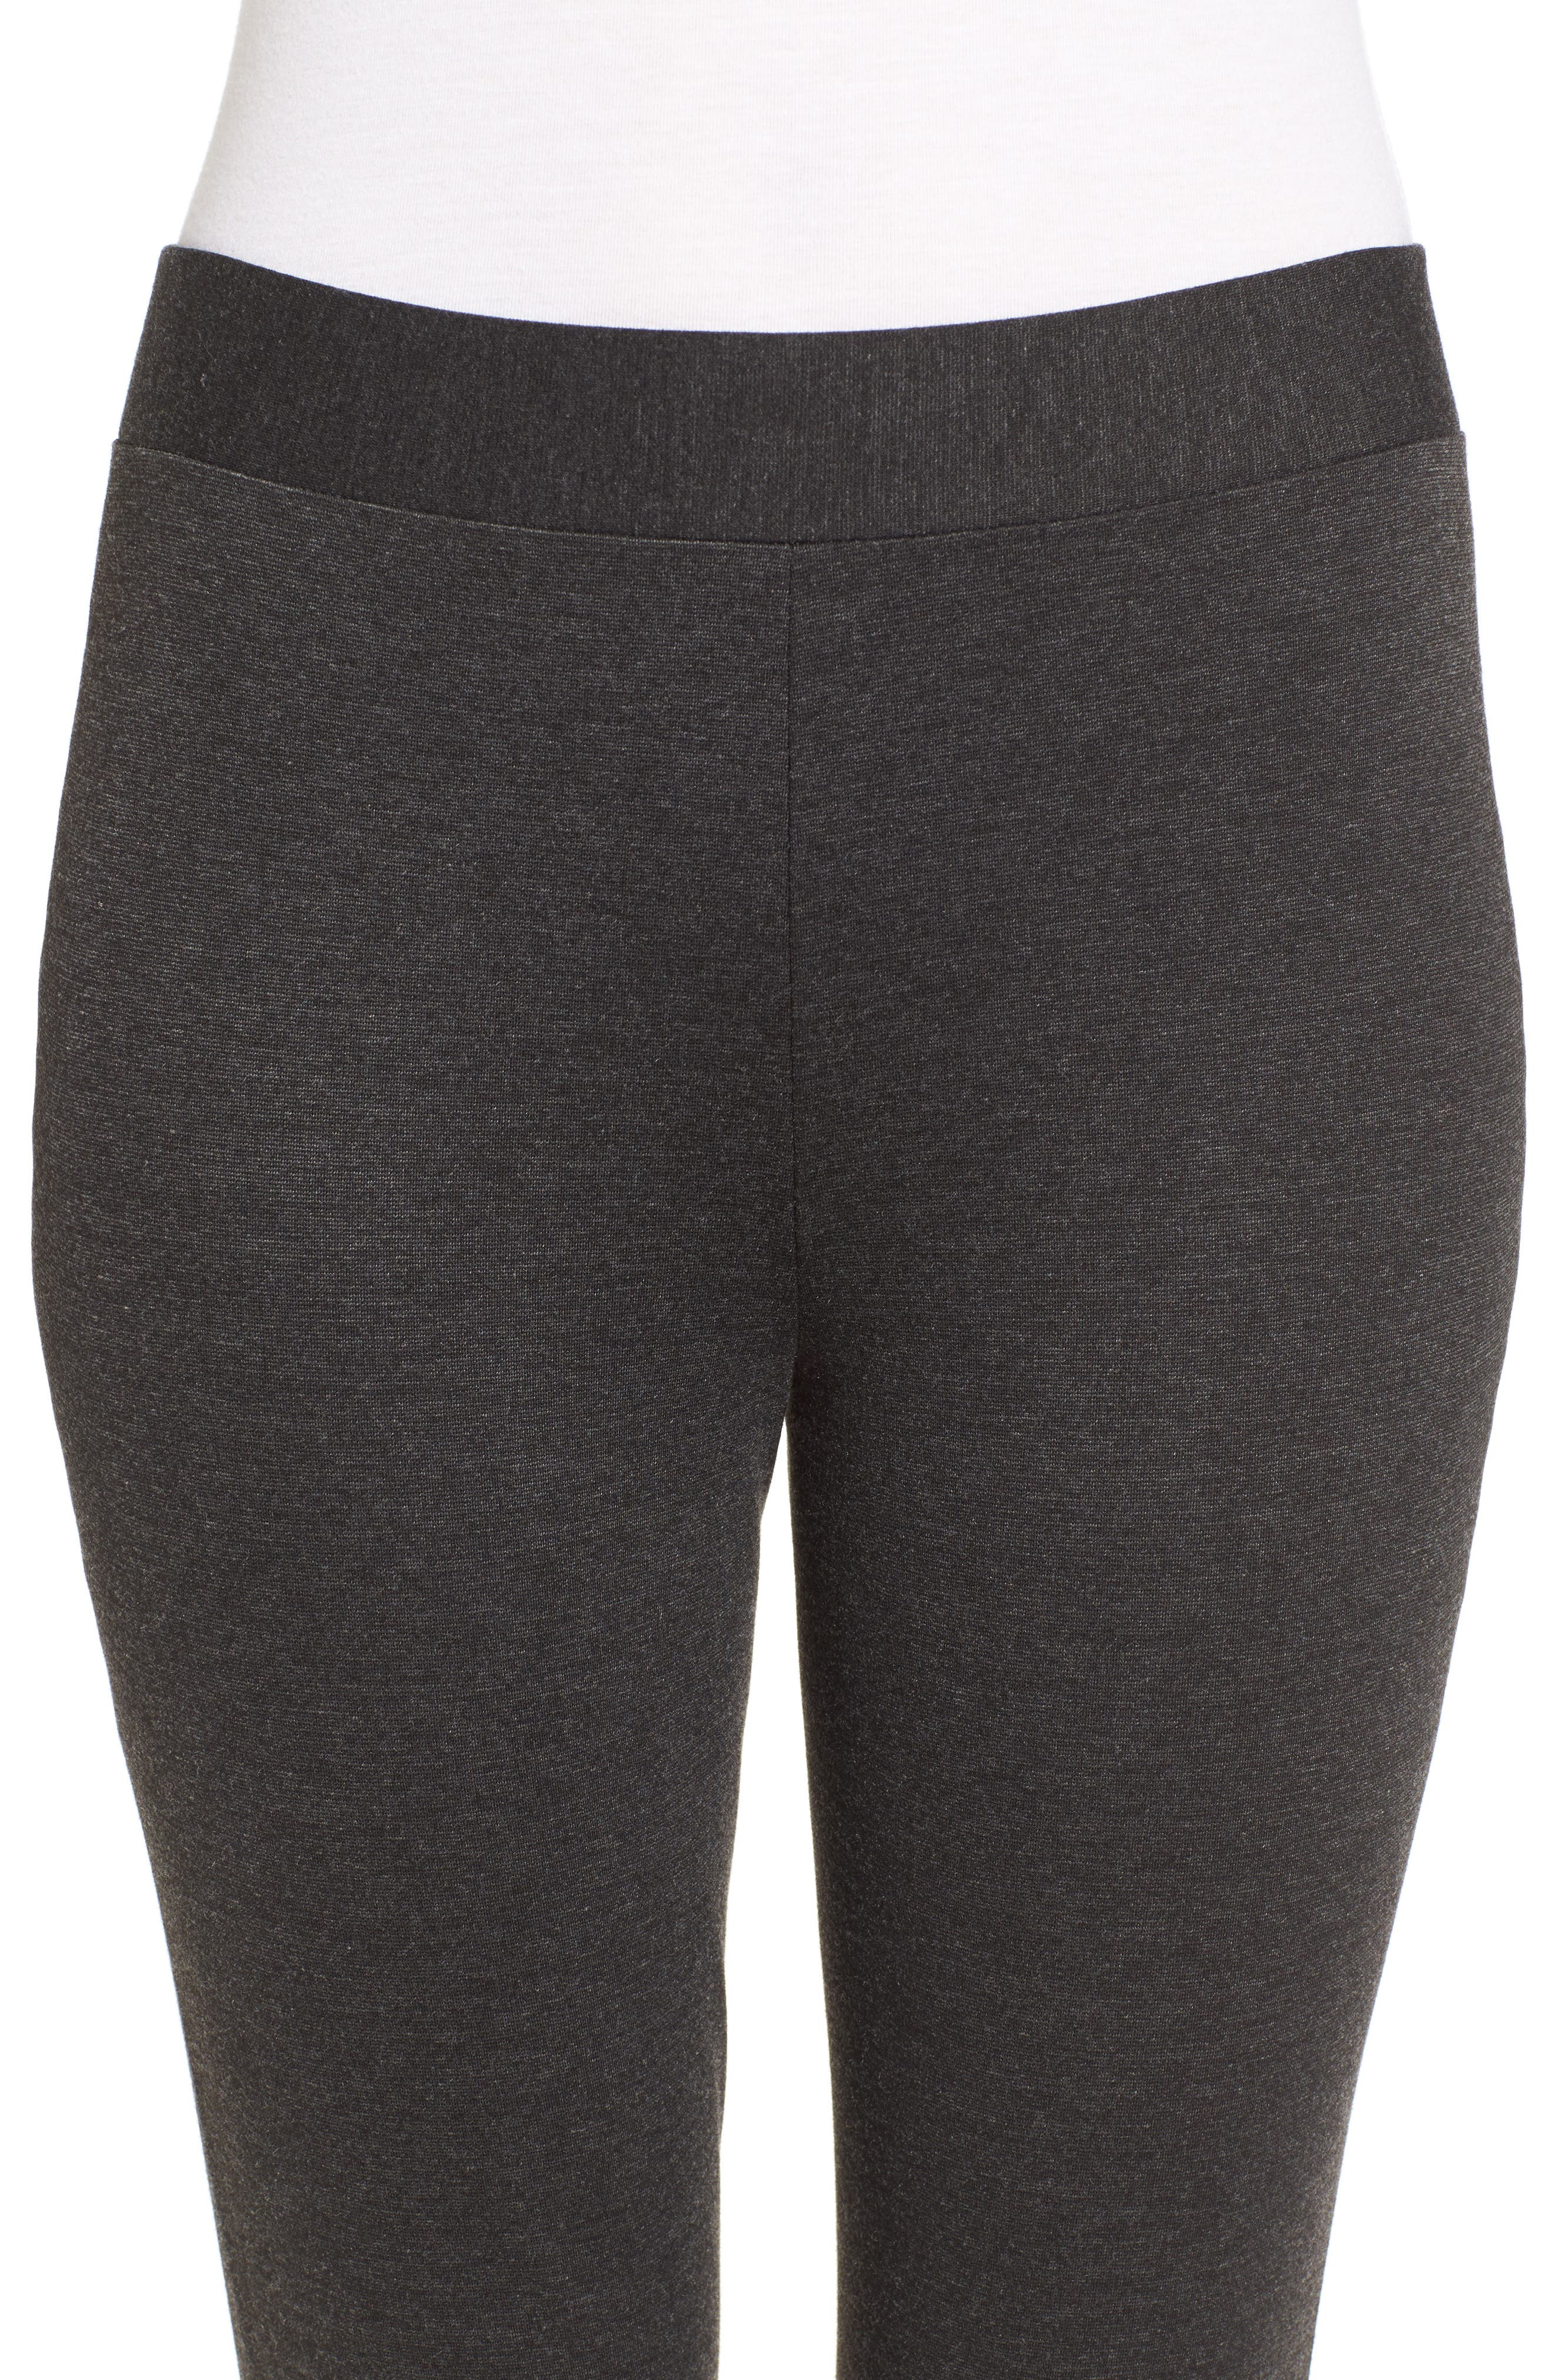 Two by Vince Camuto Seamed Back Leggings,                             Alternate thumbnail 4, color,                             DARK HEATHER GREY